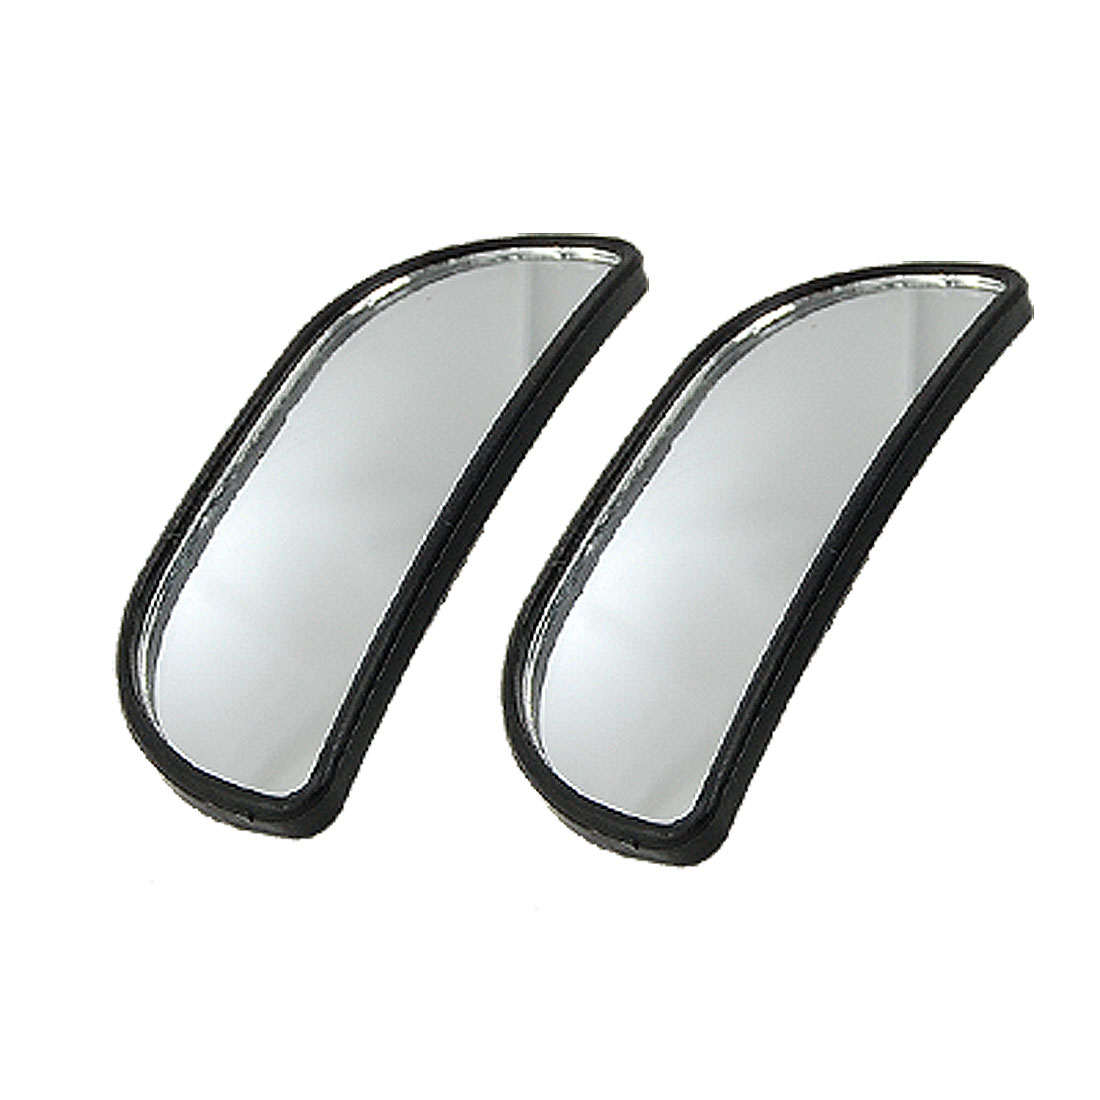 2pcs Black Car Auto Adjustable Wide Angle Side Rearview Blind Spot Mirror